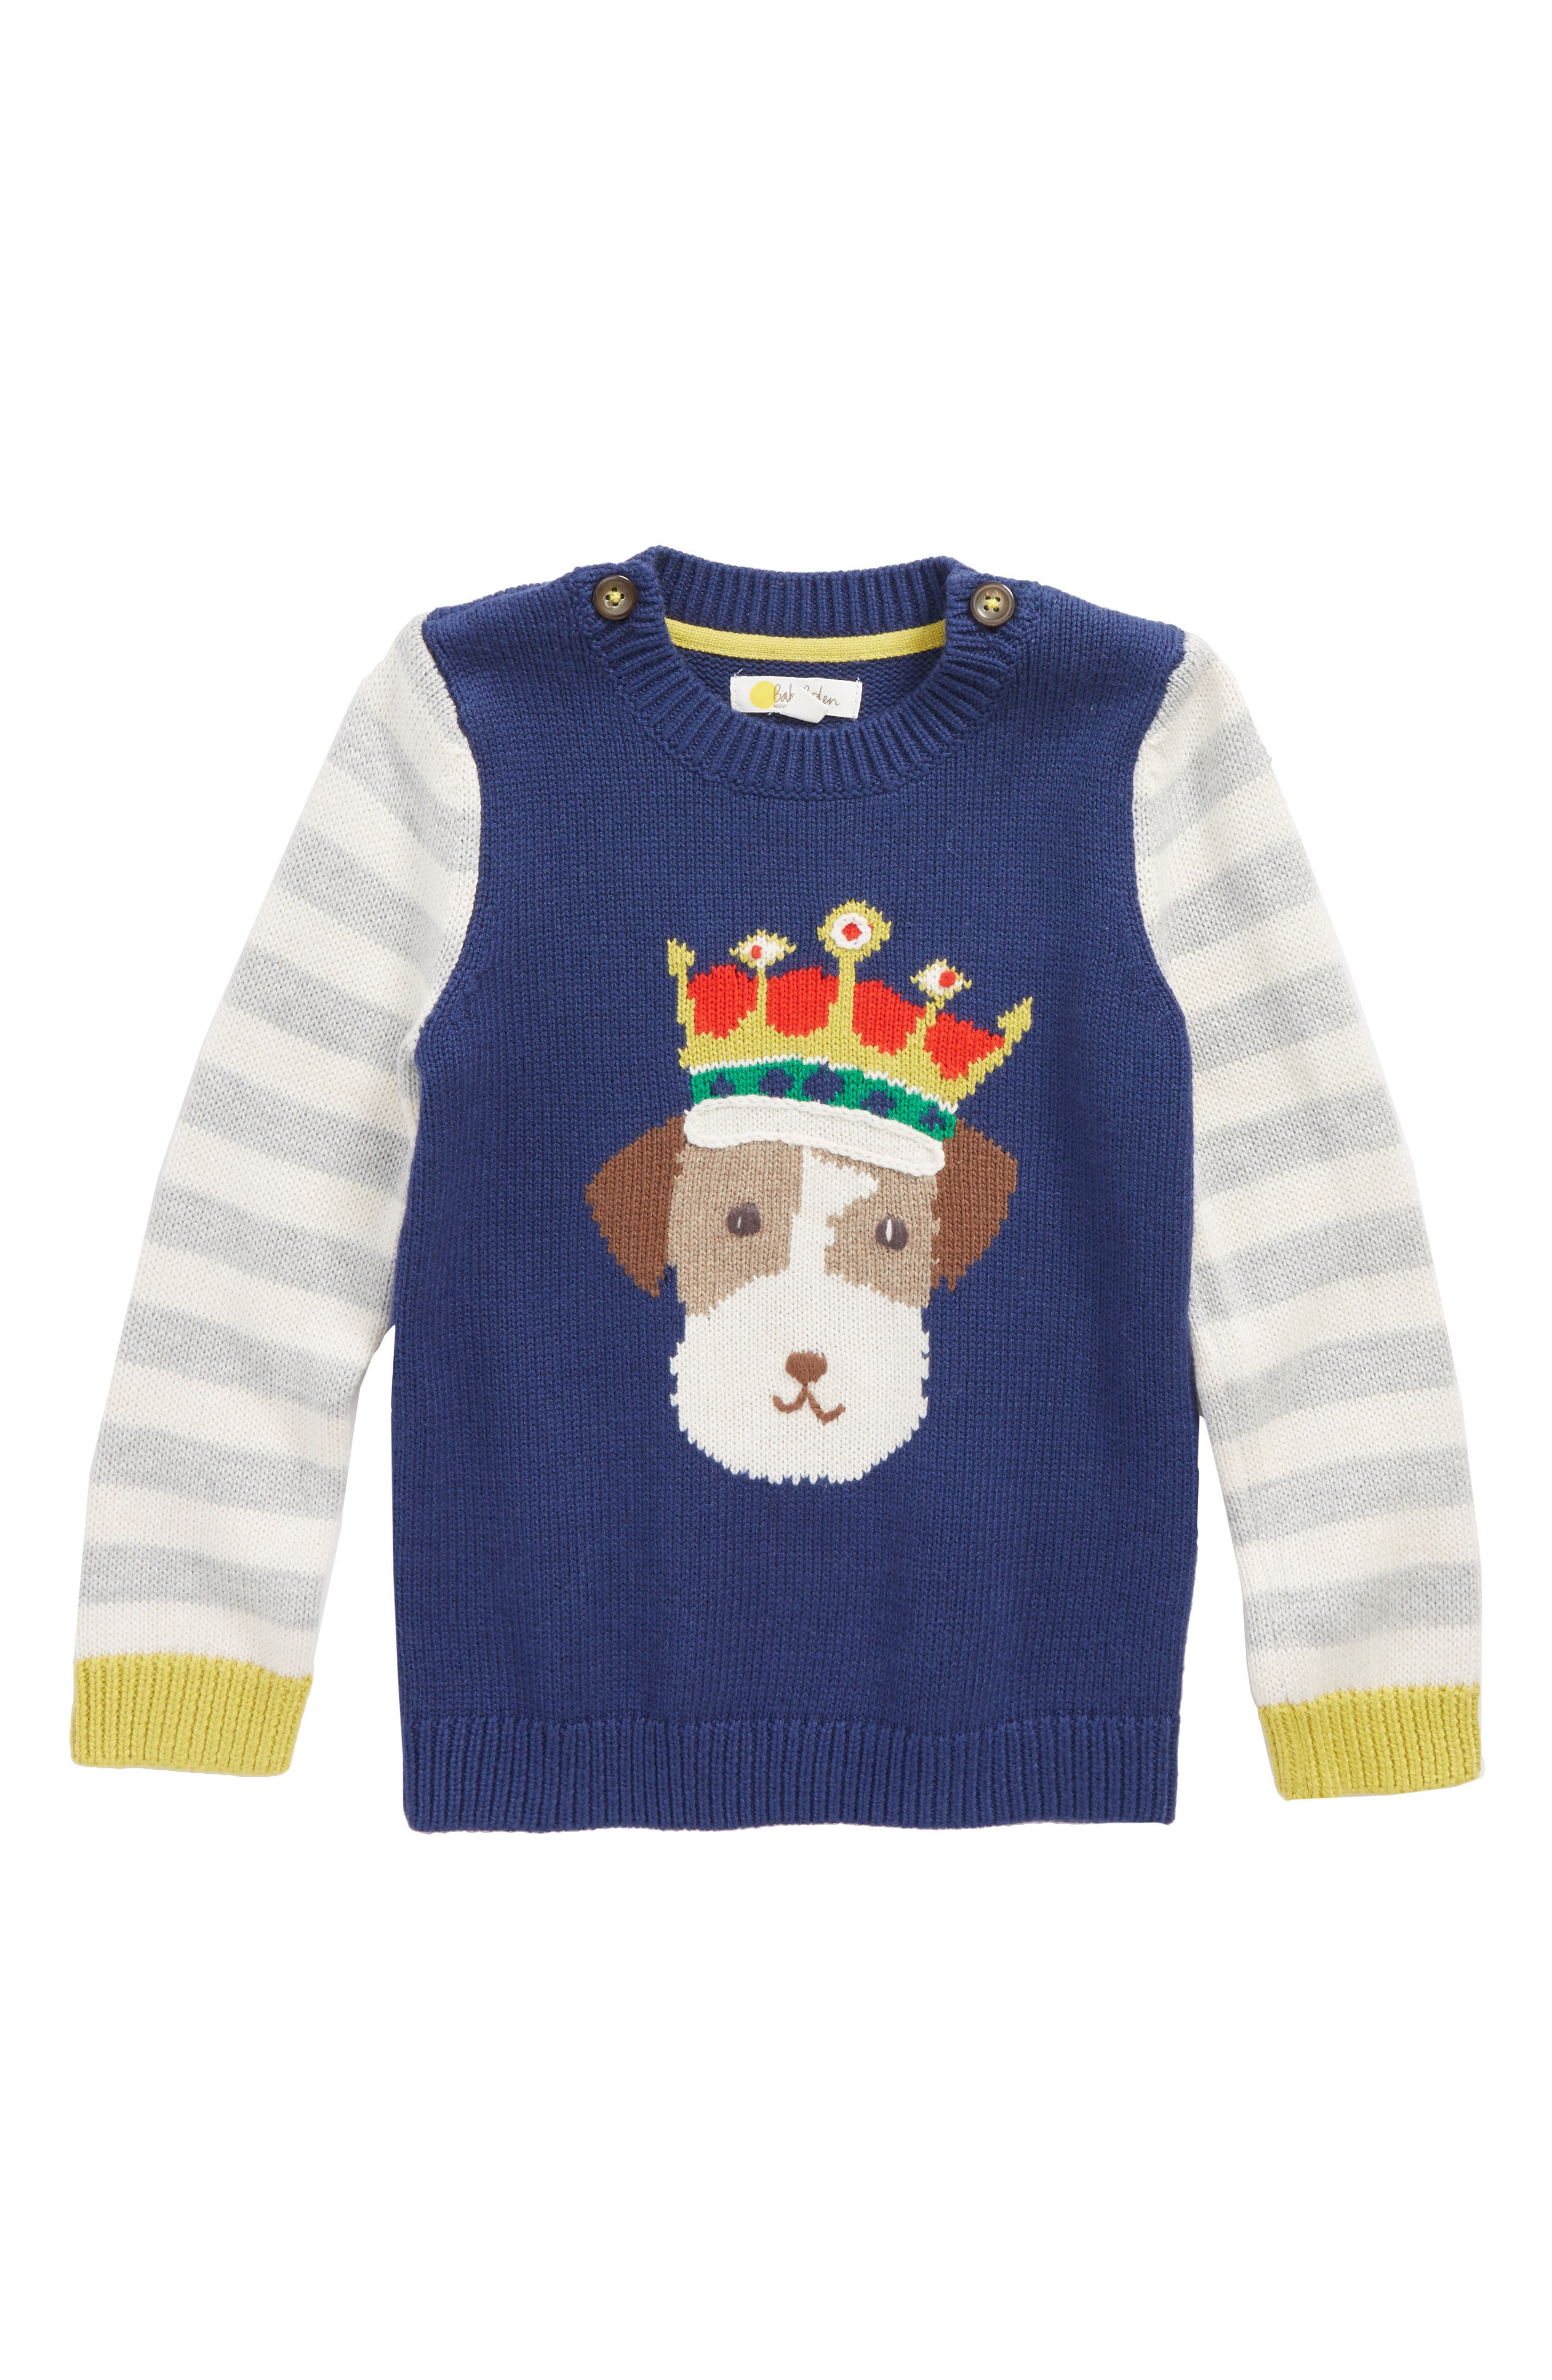 Alternate Image 1 Selected - Mini Boden Fun Knit Sweater (Baby Boys & Toddler Boys)